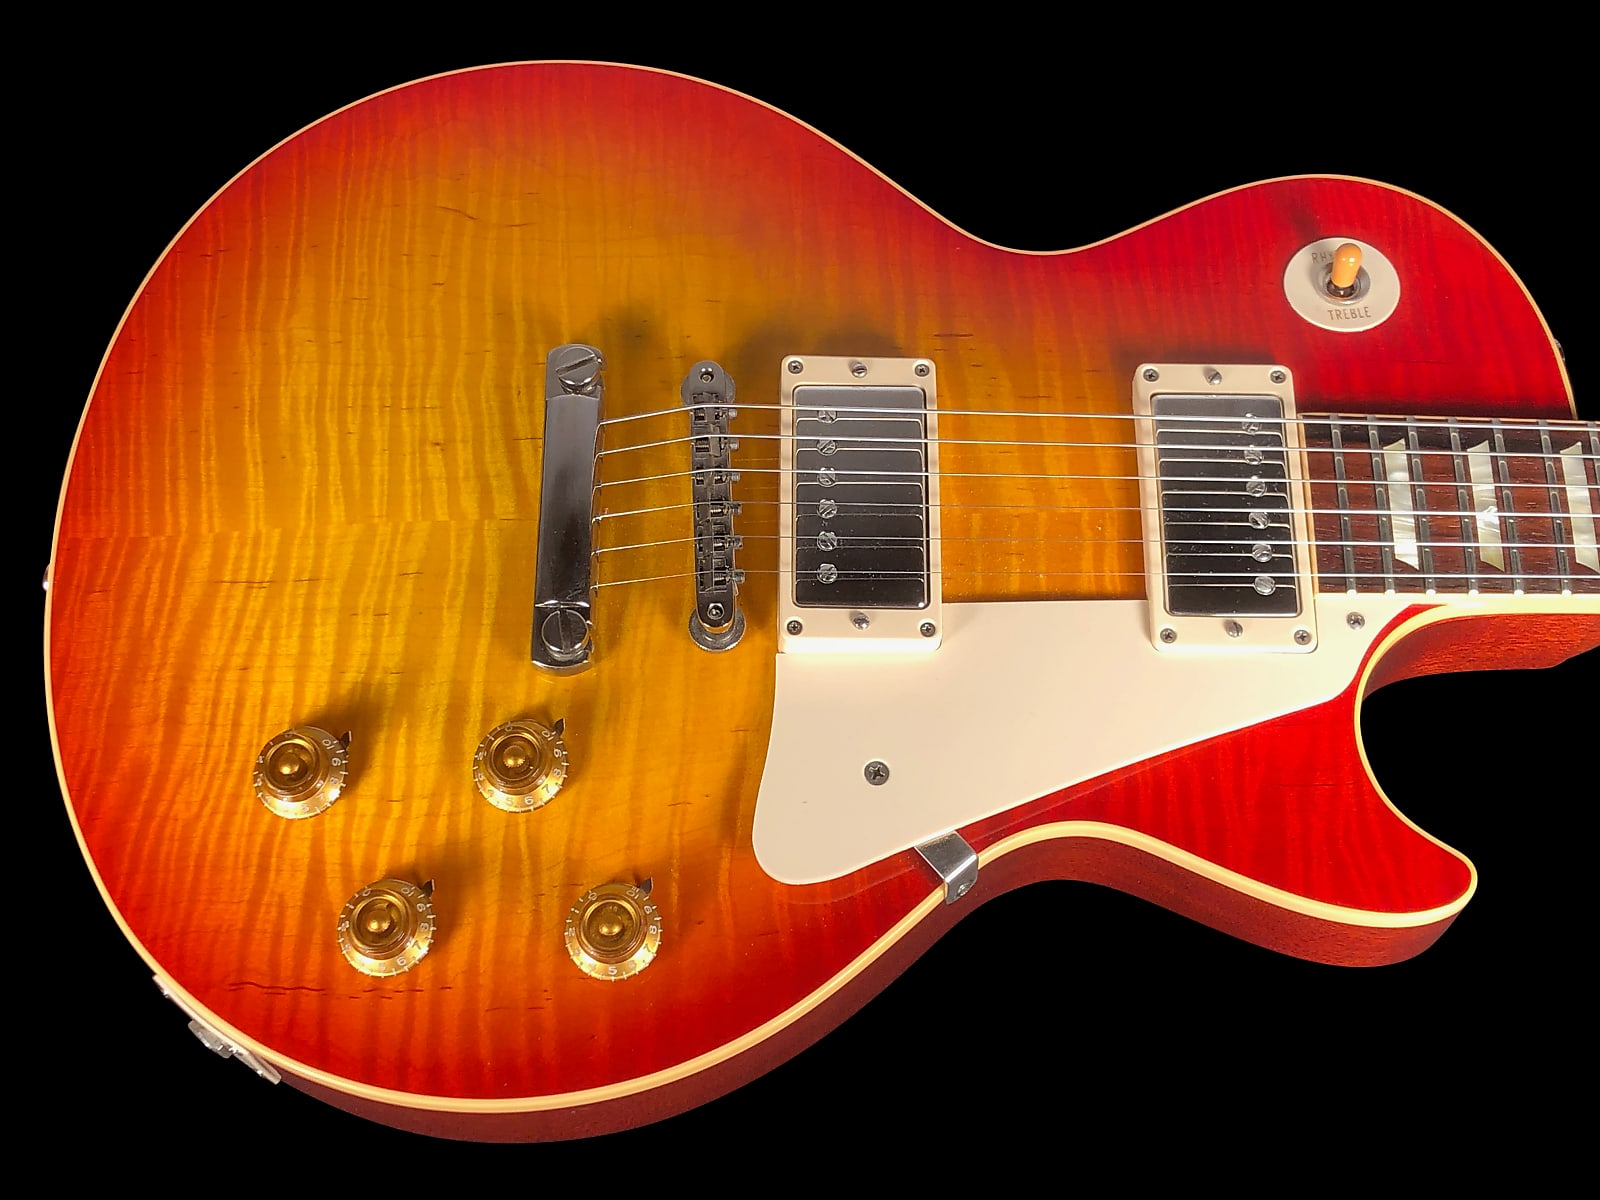 2007 Gibson Les Paul 1959 Historic R9 Custom Shop '59 Reissue Flame Top ~ Washed Cherry